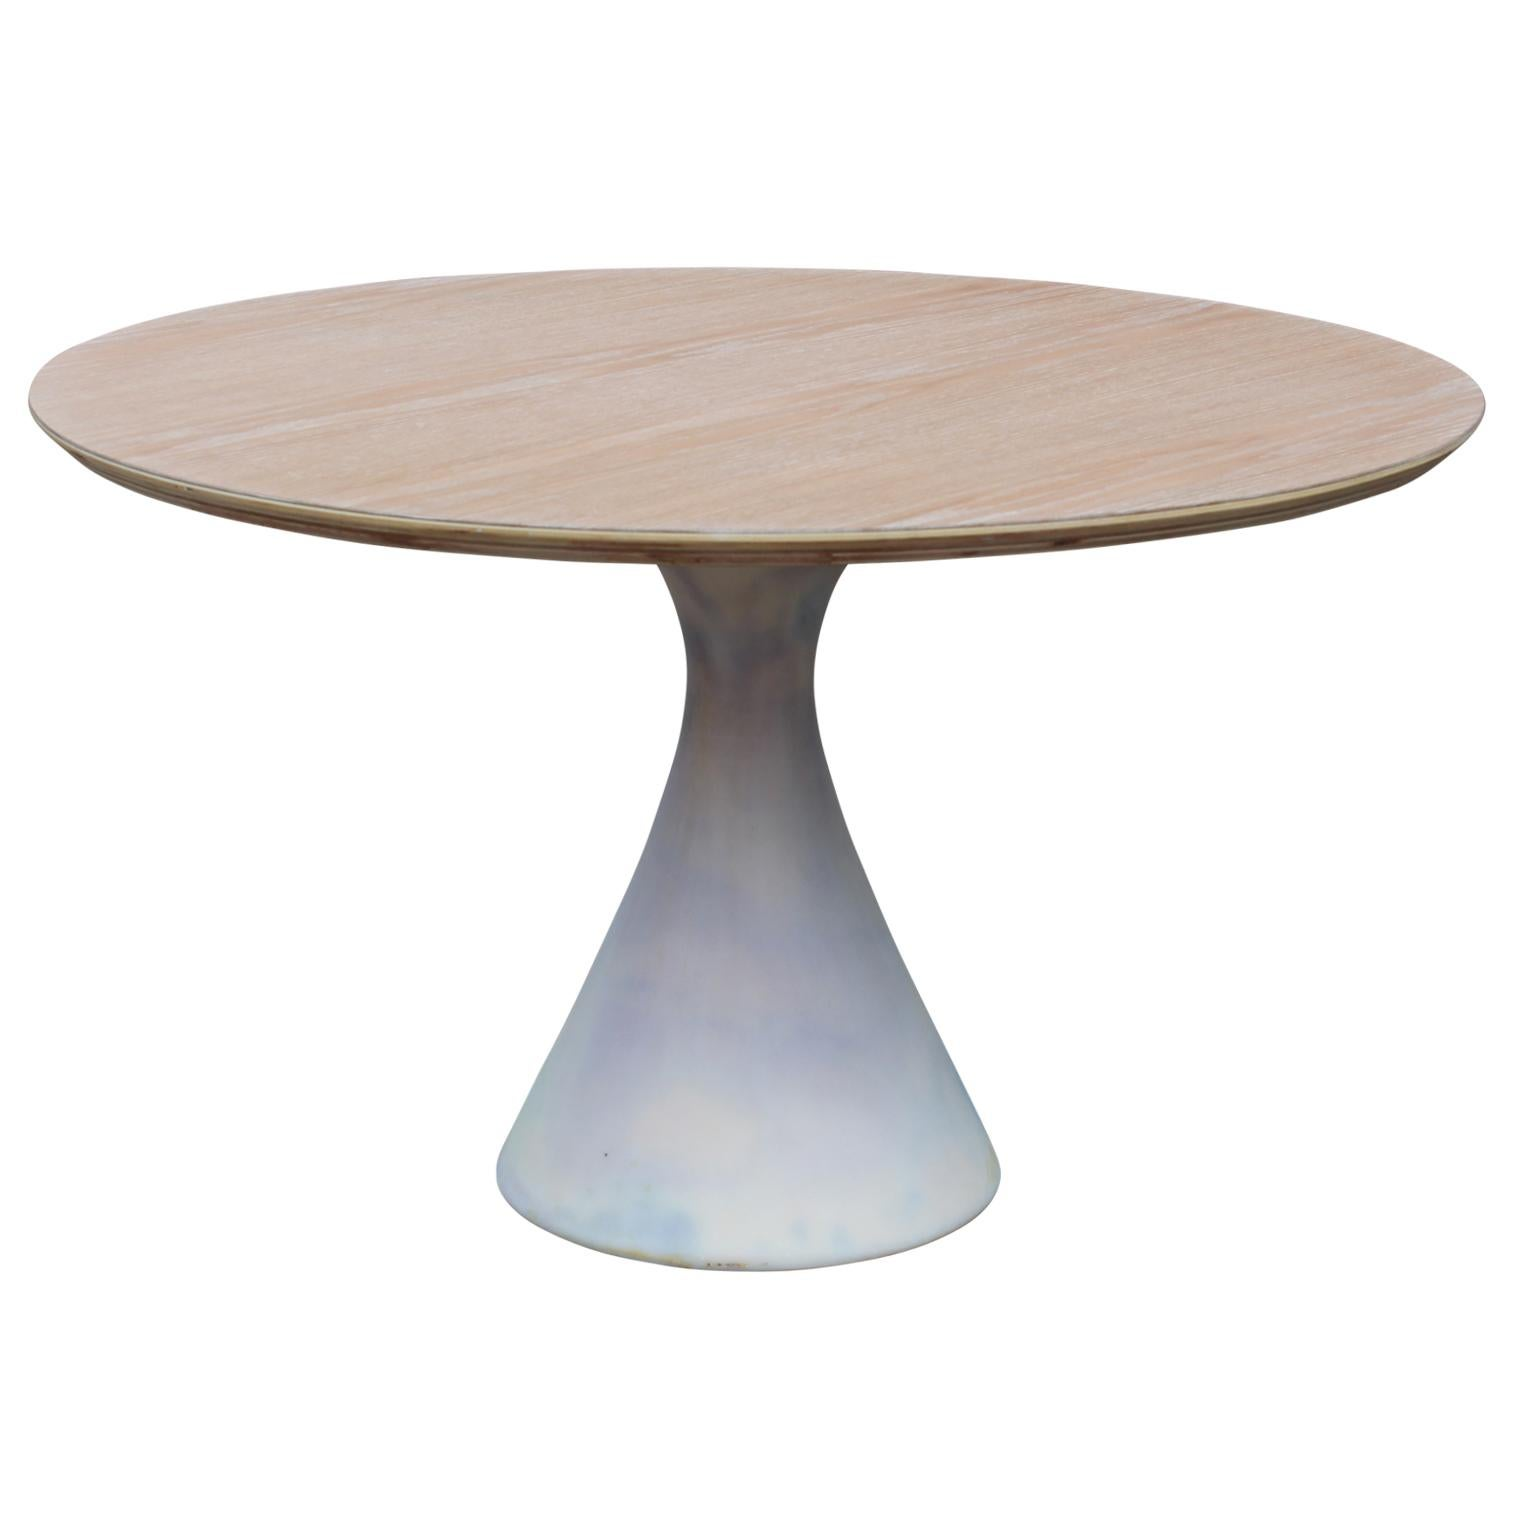 Superieur Custom Postmodern Round Wooden Tulip Table For Sale At 1stdibs